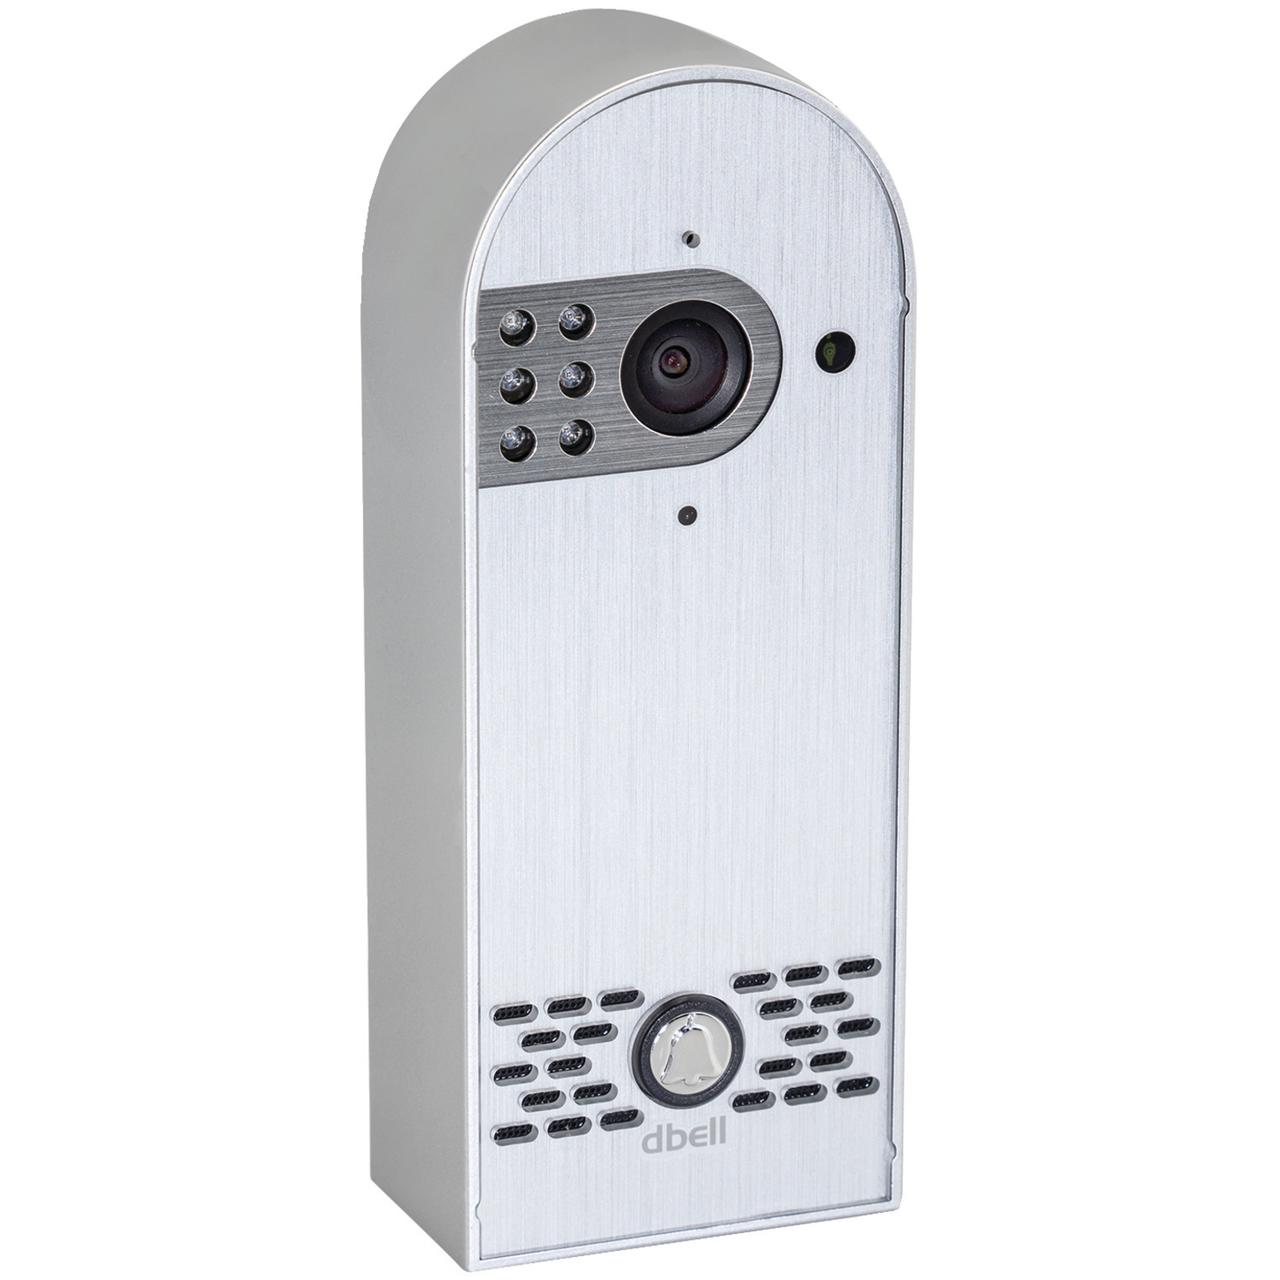 Dbell DB-HD-LIVE-S HD Live Video Doorbell (Silver) by DBELL